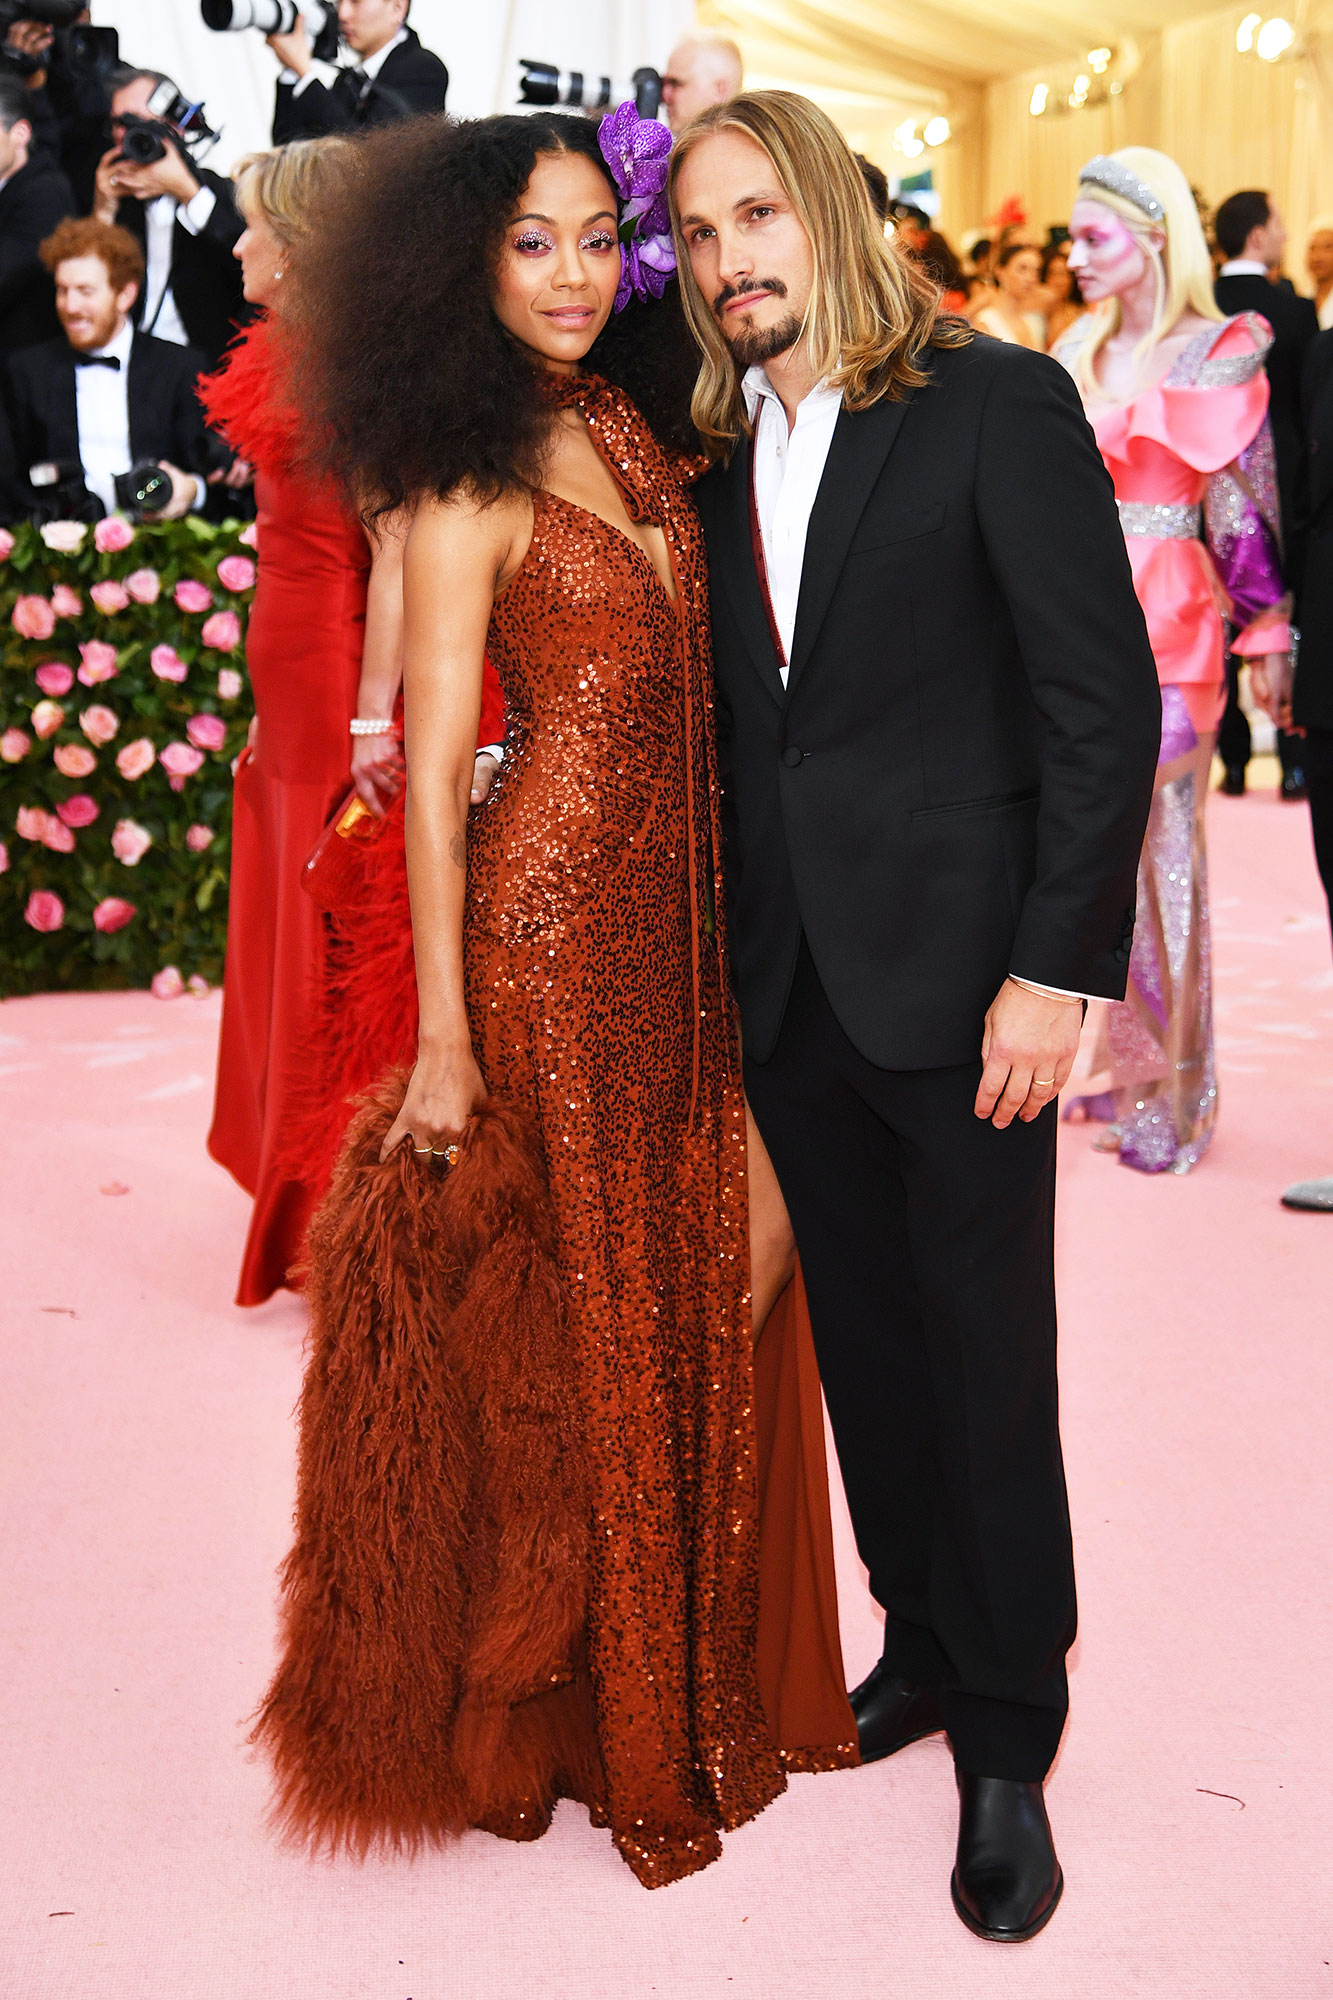 Zoe Saldana and Marco Perego met gala 2019 couples - The actress stunned in a burnt orange Michael Kors Collection gown, which her hubby paid homage to with his tie.